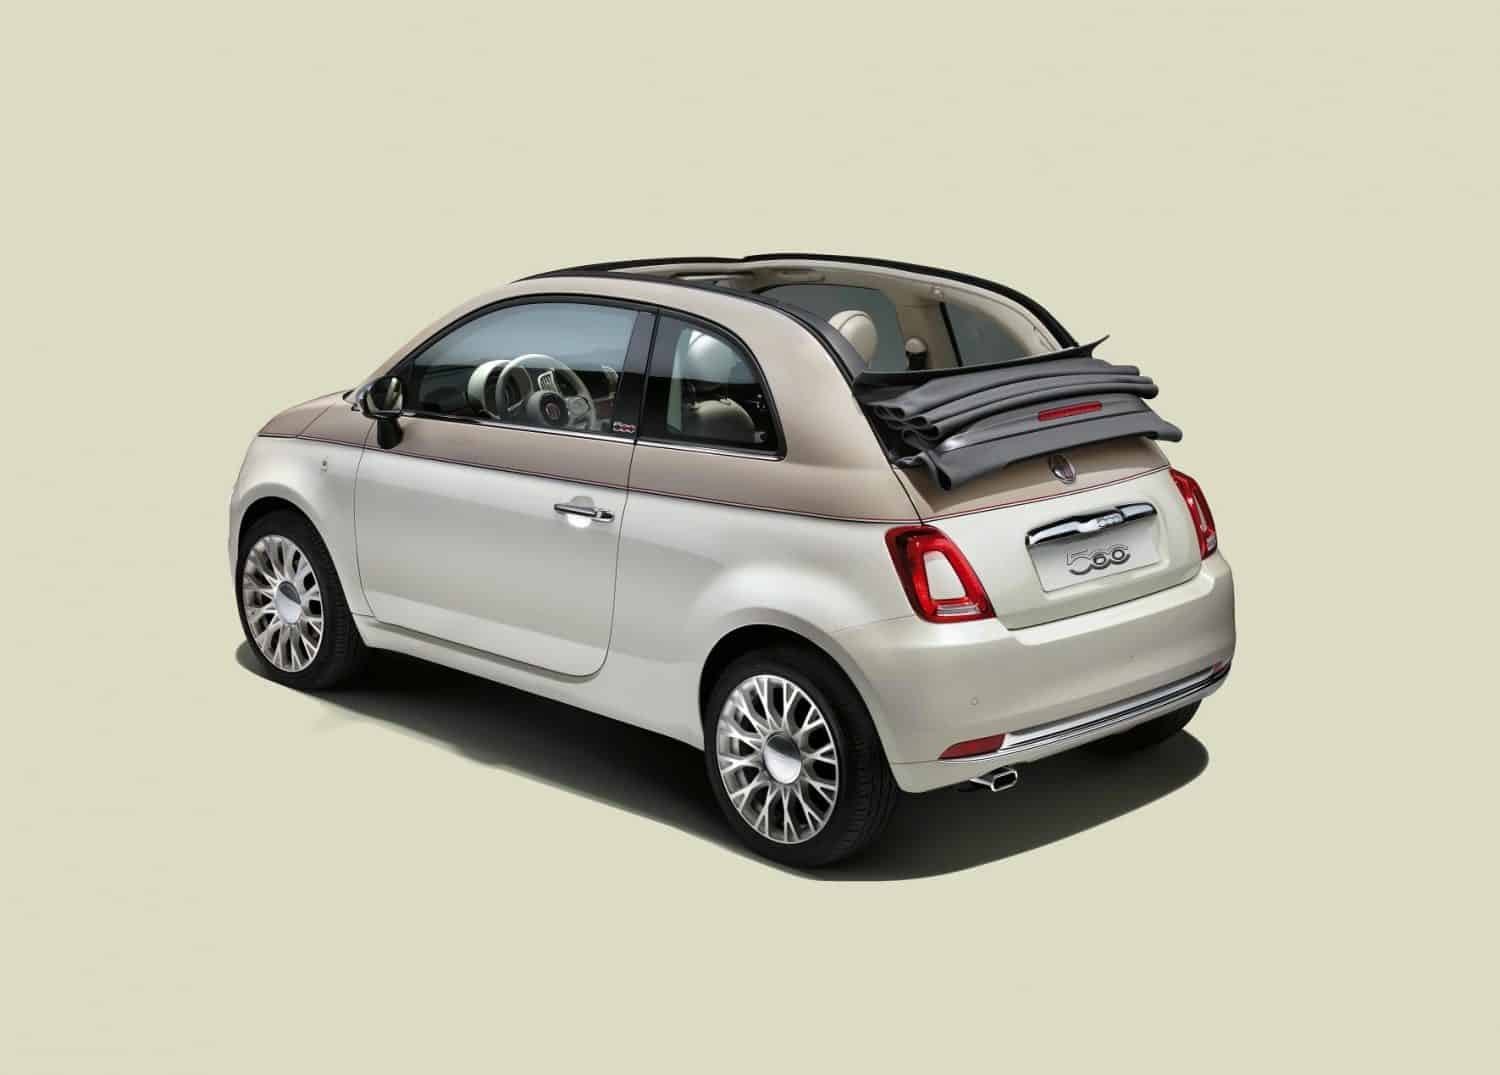 Rear view of the special edition Fiat 500